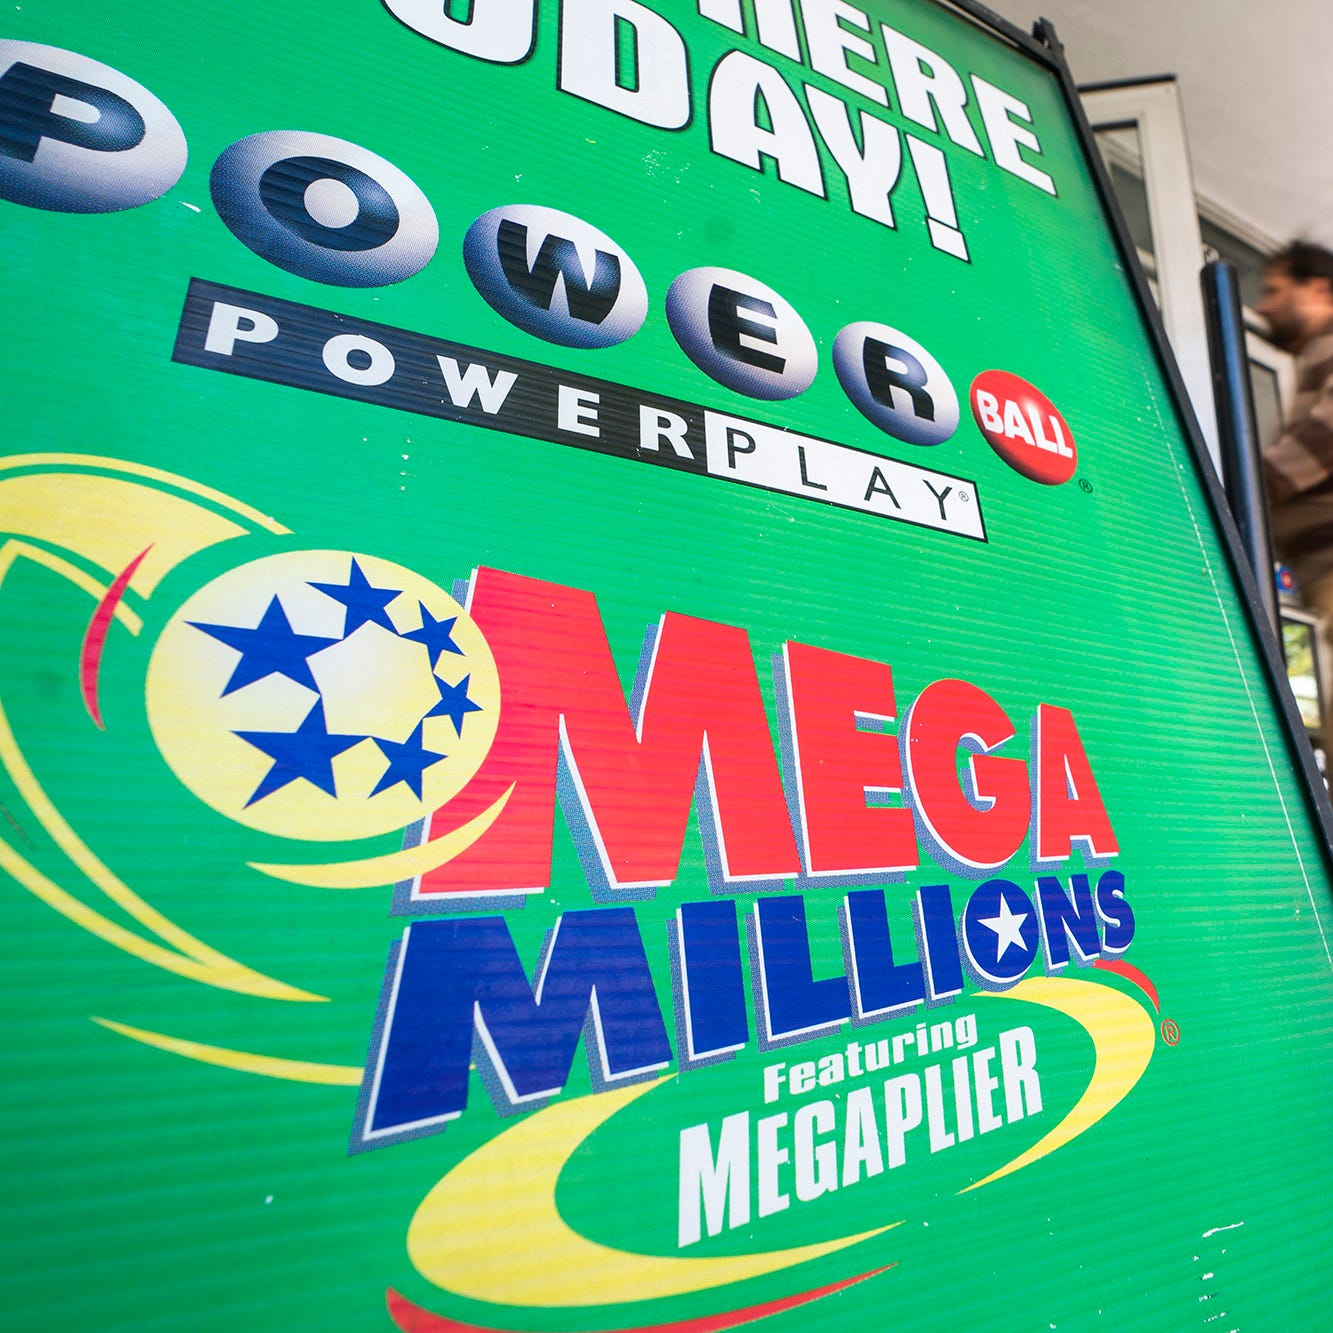 An advertisement for Mega Millions, a 44-state lottery with a record jackpot of nearly one billion US dollars, outside a grocery store in Washington, D.C., on Oct. 18, 2018. The jackpot for New Year's Day is $425 million.